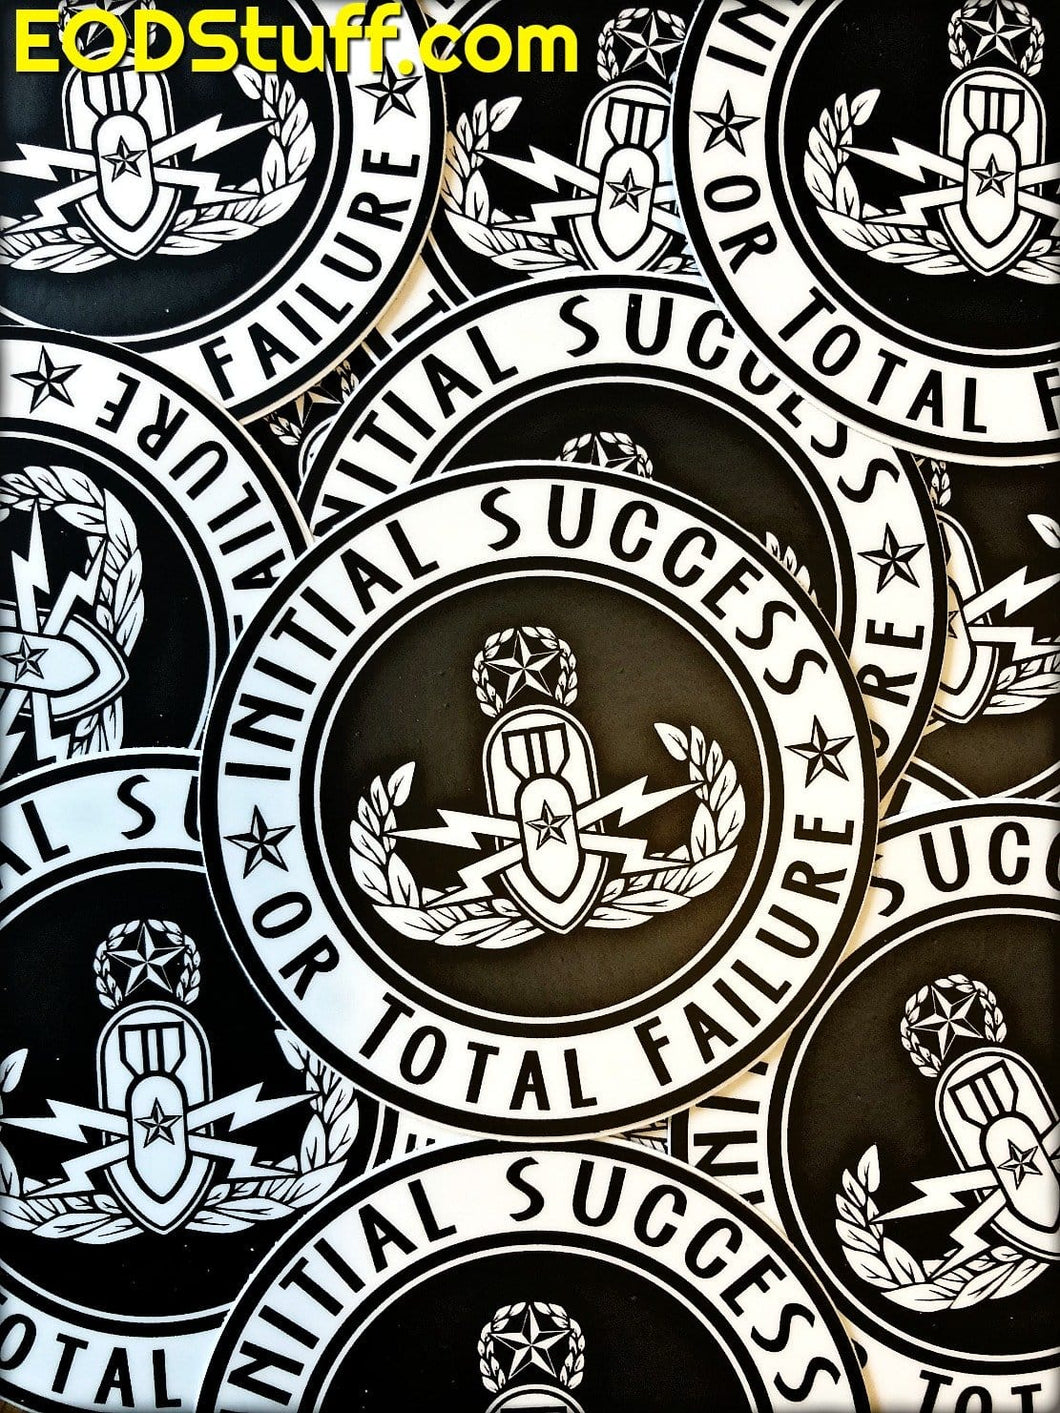 Initial Success or Total Failure Die Cut Stickers - Black and White EOD Sticker